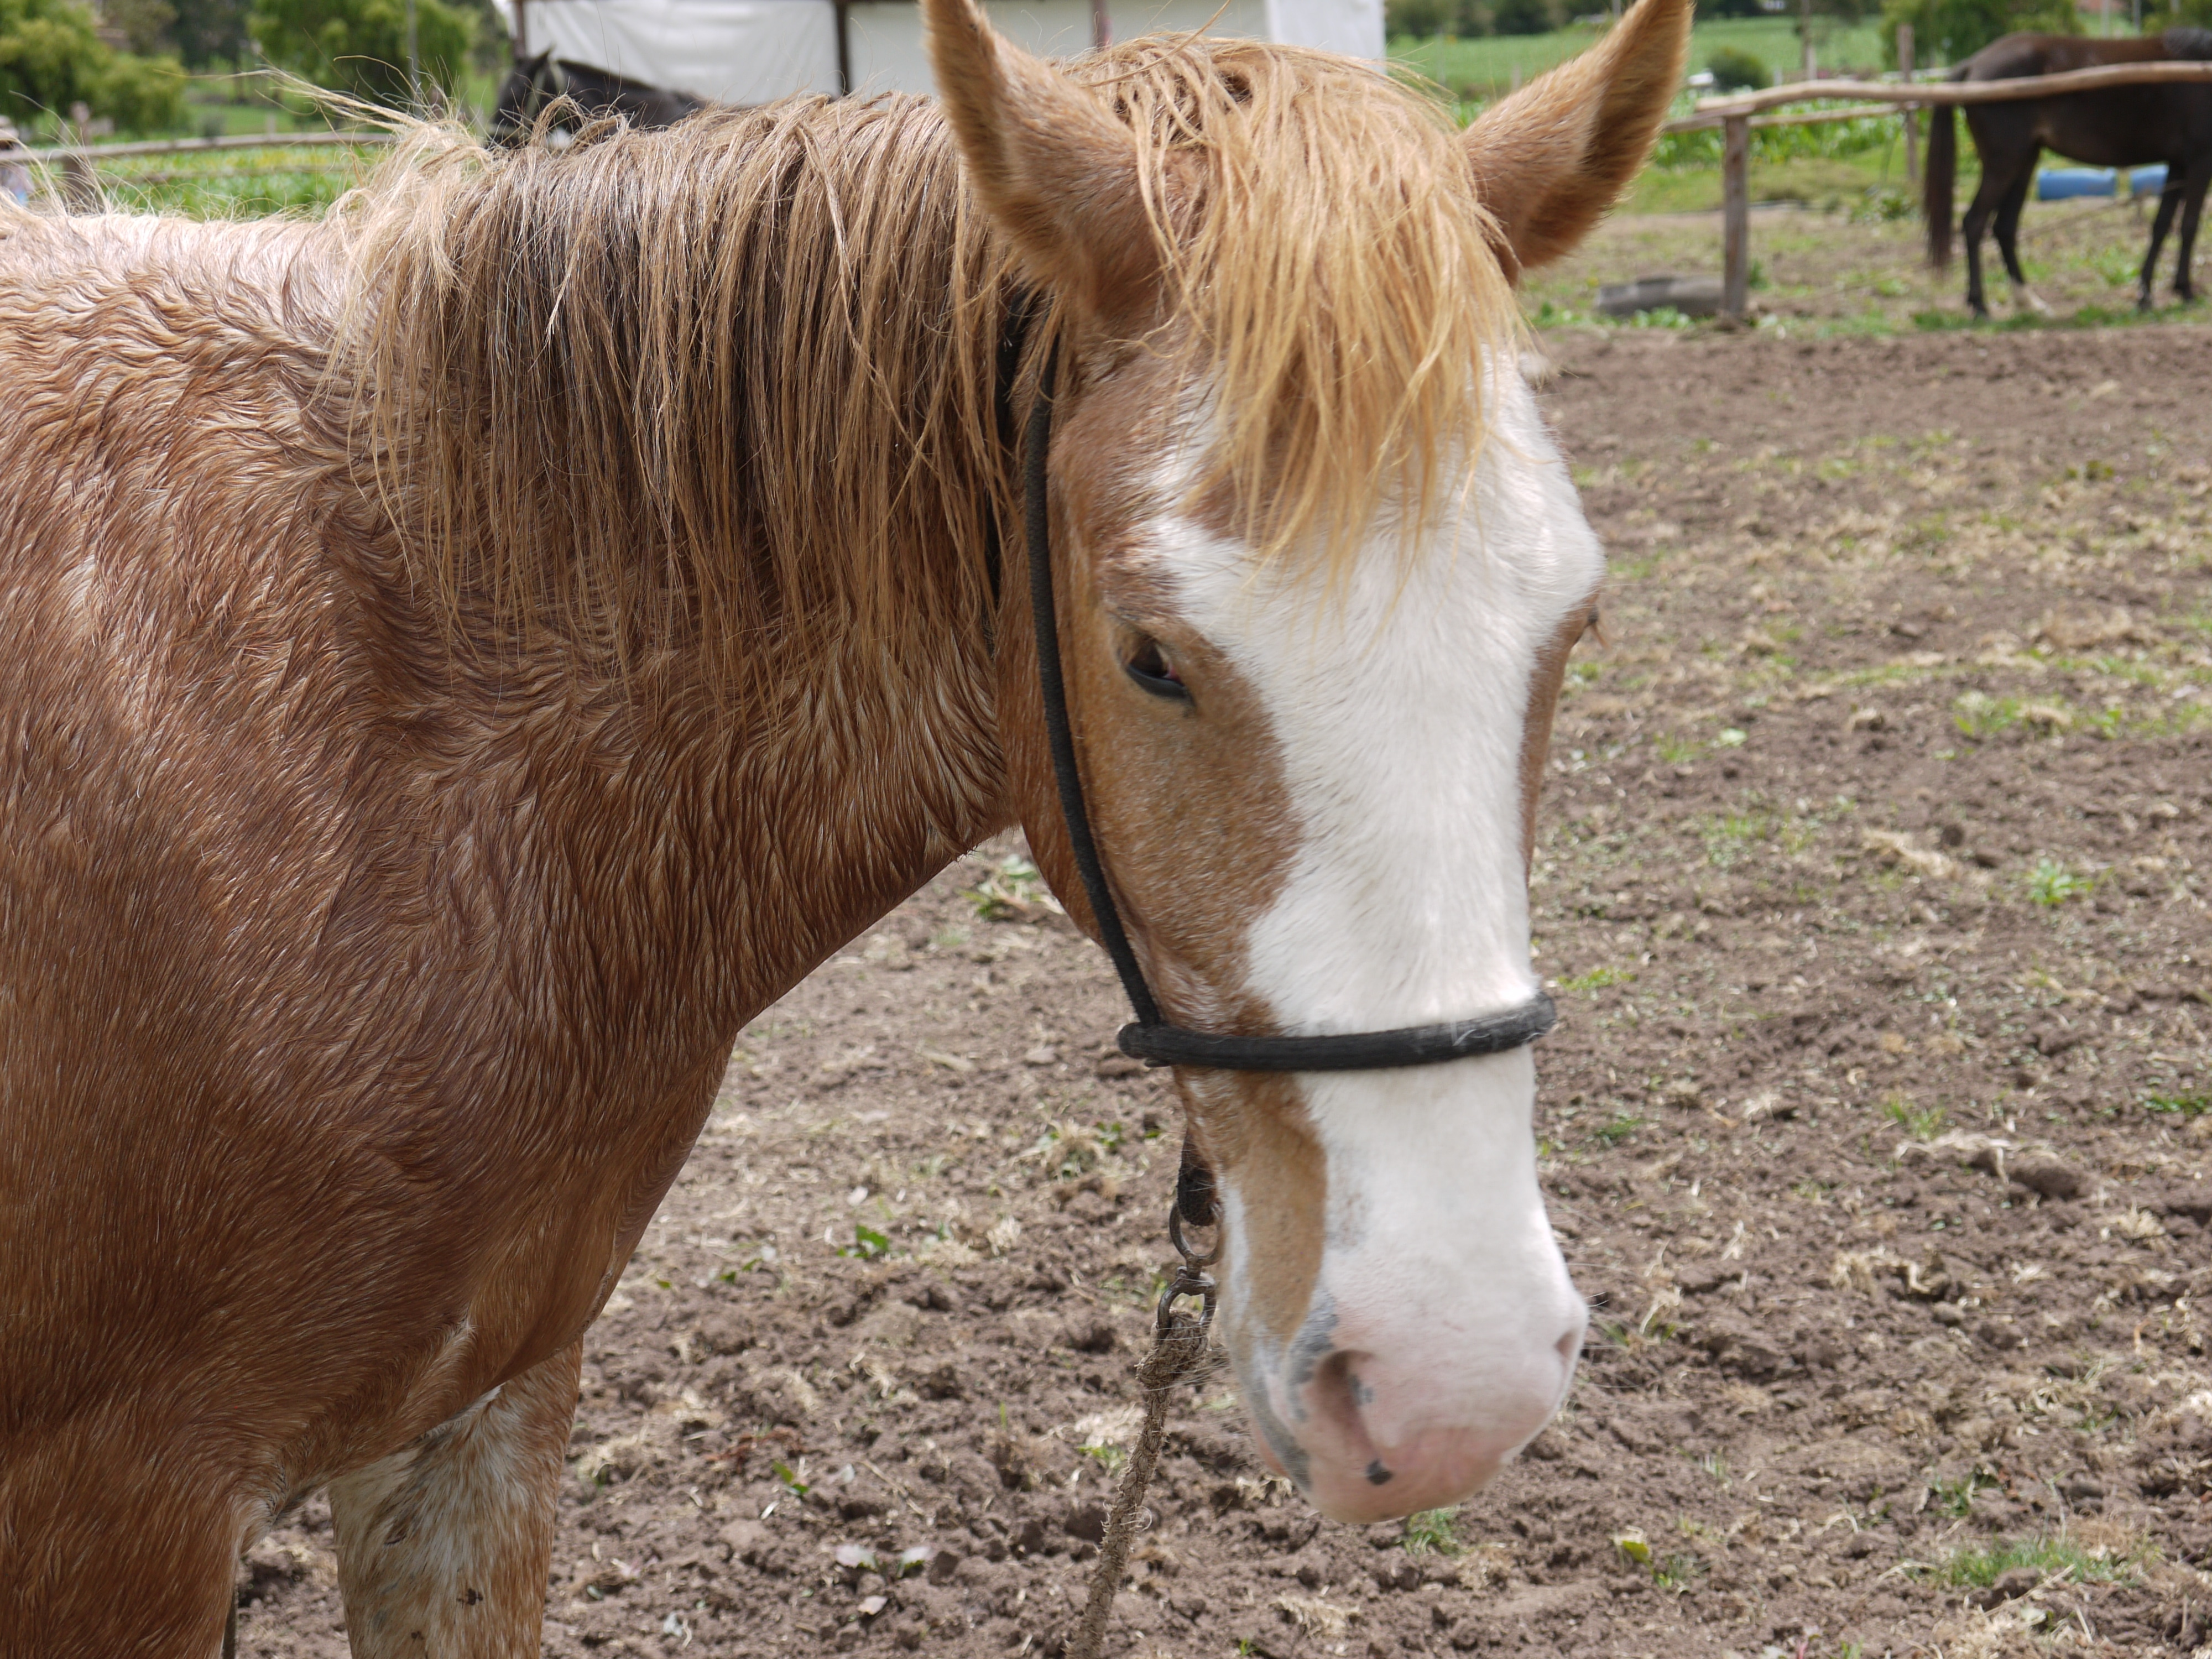 Recused Horse at Peru Horse Sanctuary